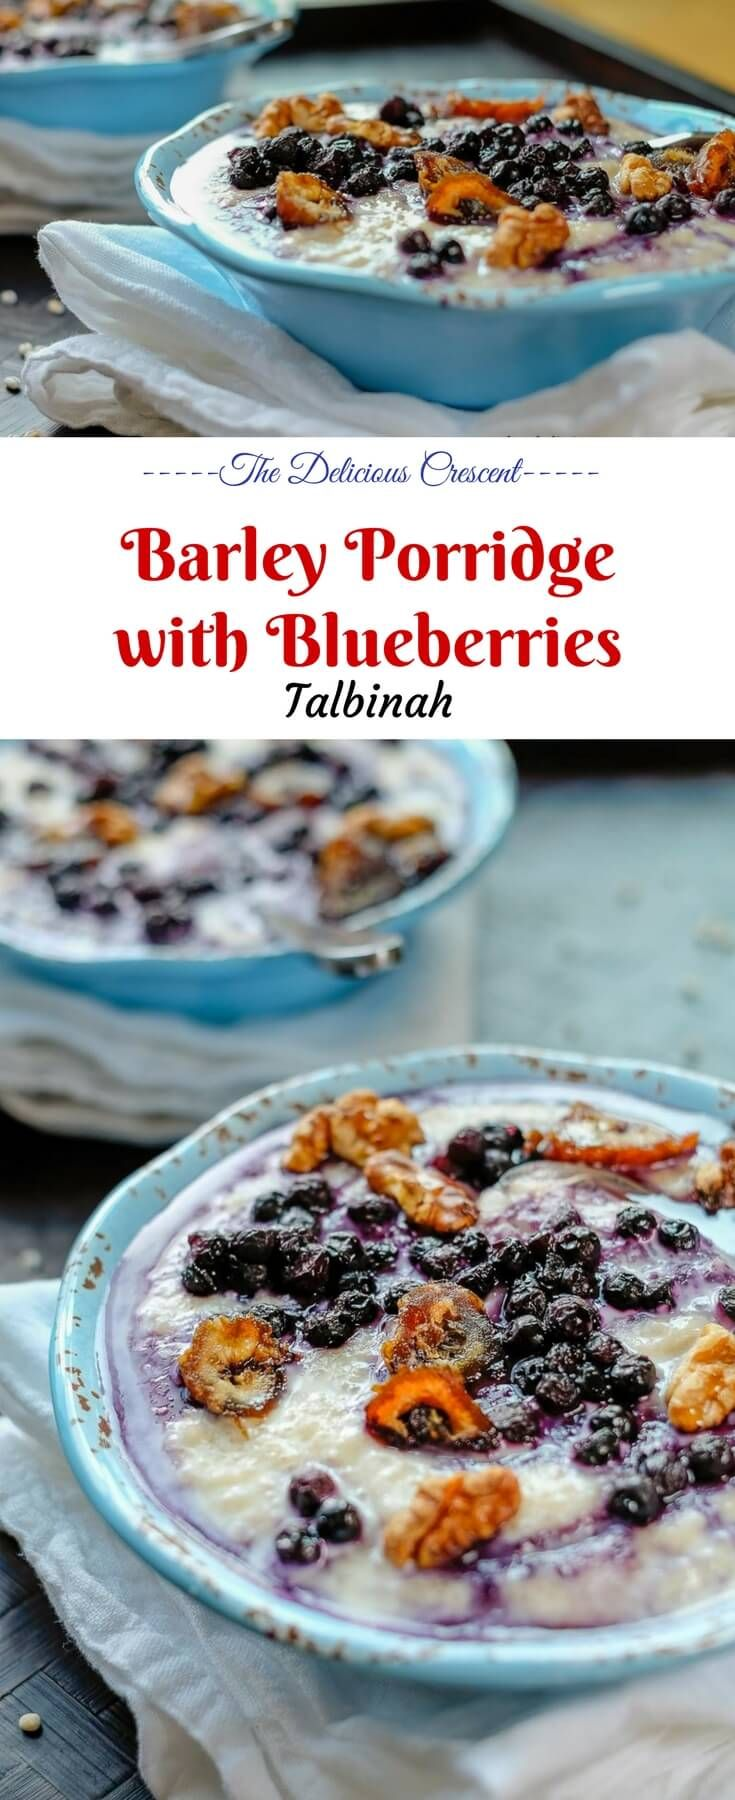 Barley porridge with blueberries is a tasty and wholesome breakfast topped with nutrient rich berries, walnuts, dates and a drizzle of honey. This is sure to give you a healthy and happy start to take on the challenges of the day!! #porridge #barley #breakfast #blueberries #brunch #barleyporridge #walnuts #dates #easyrecipes #vegetarian